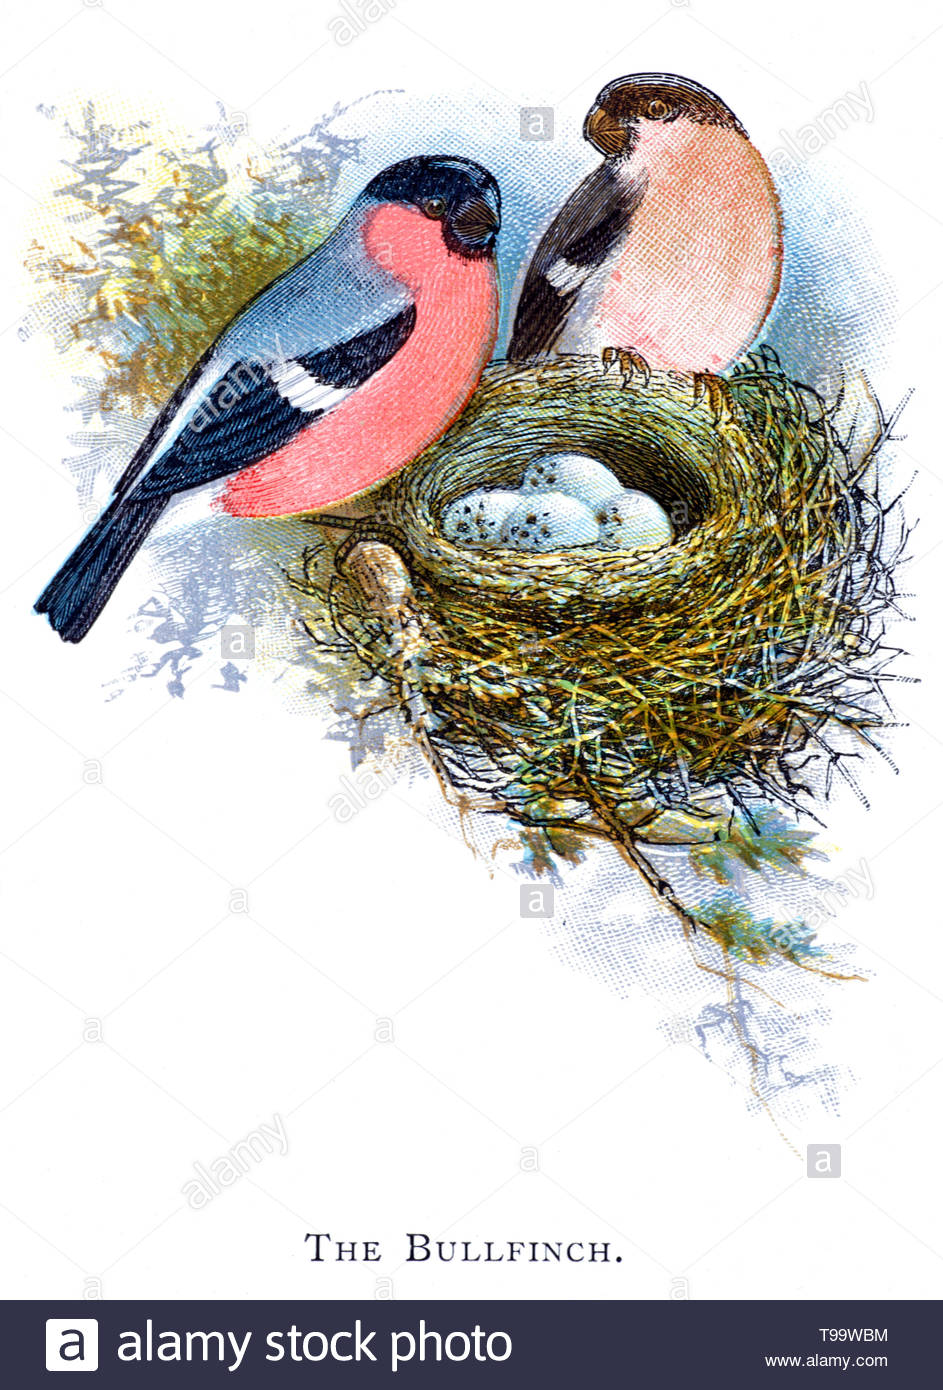 Eurasian or Common Bullfinch (Pyrrhula pyrrhula) male and female at the nest with eggs, vintage illustration published in 1898 - Stock Image